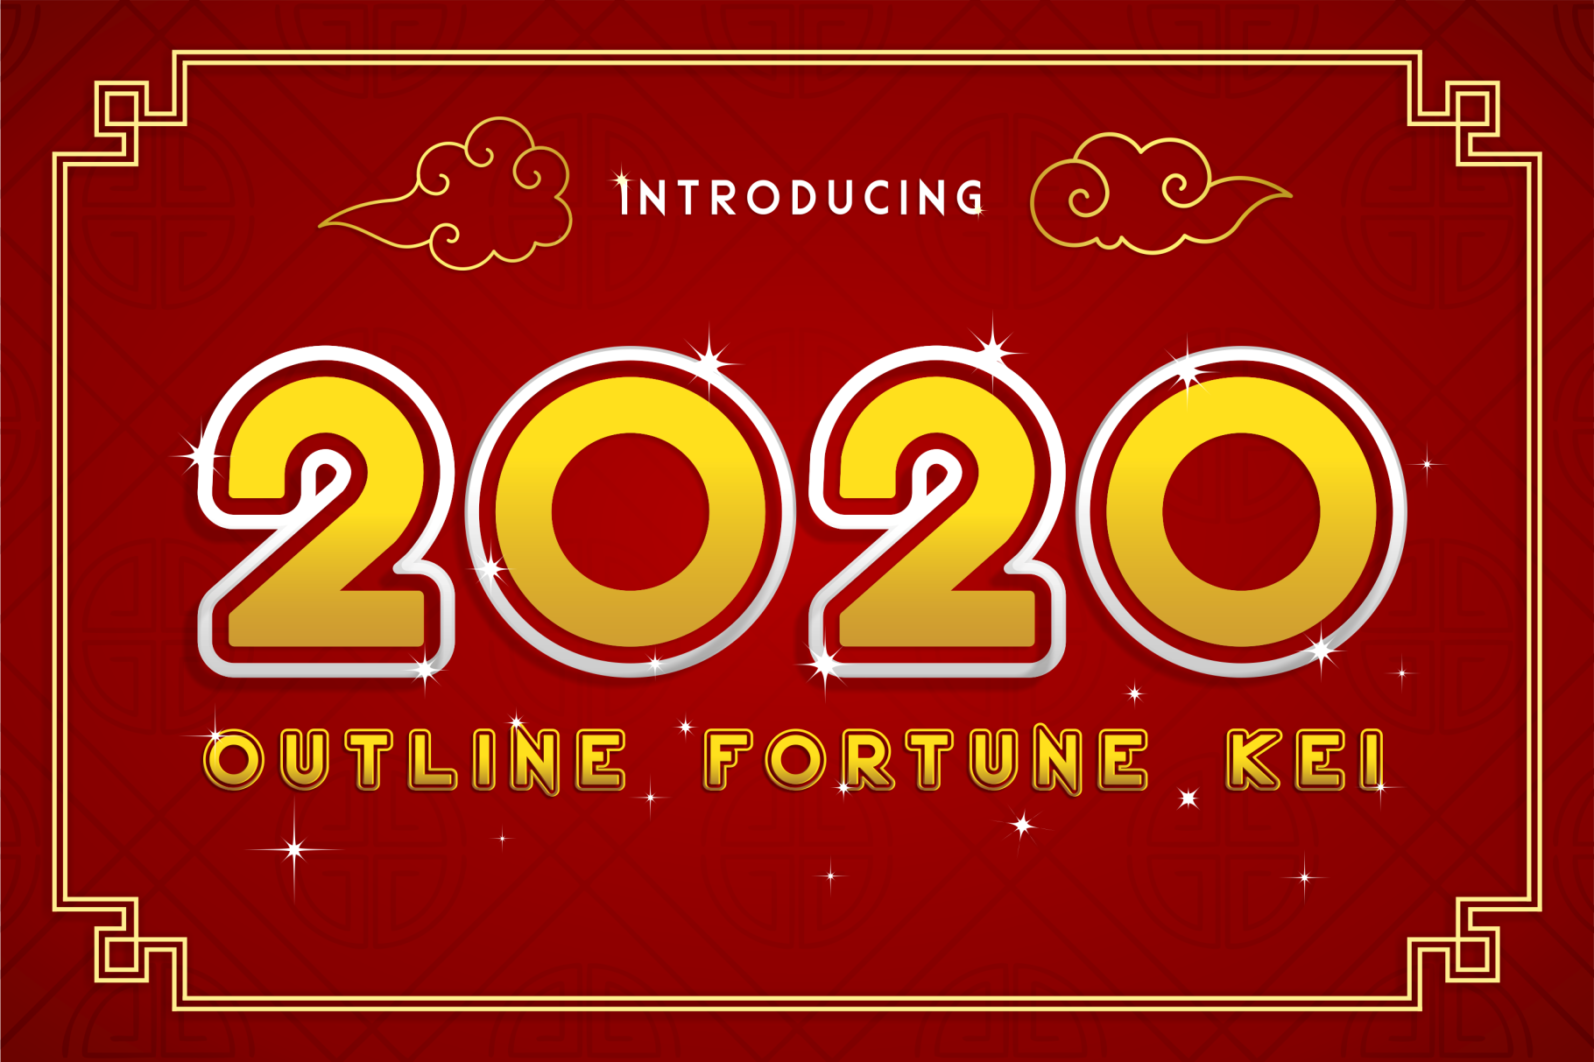 2020 Outline Fortune Kei - Preview 2020 Outline Fortune Kei 1 -